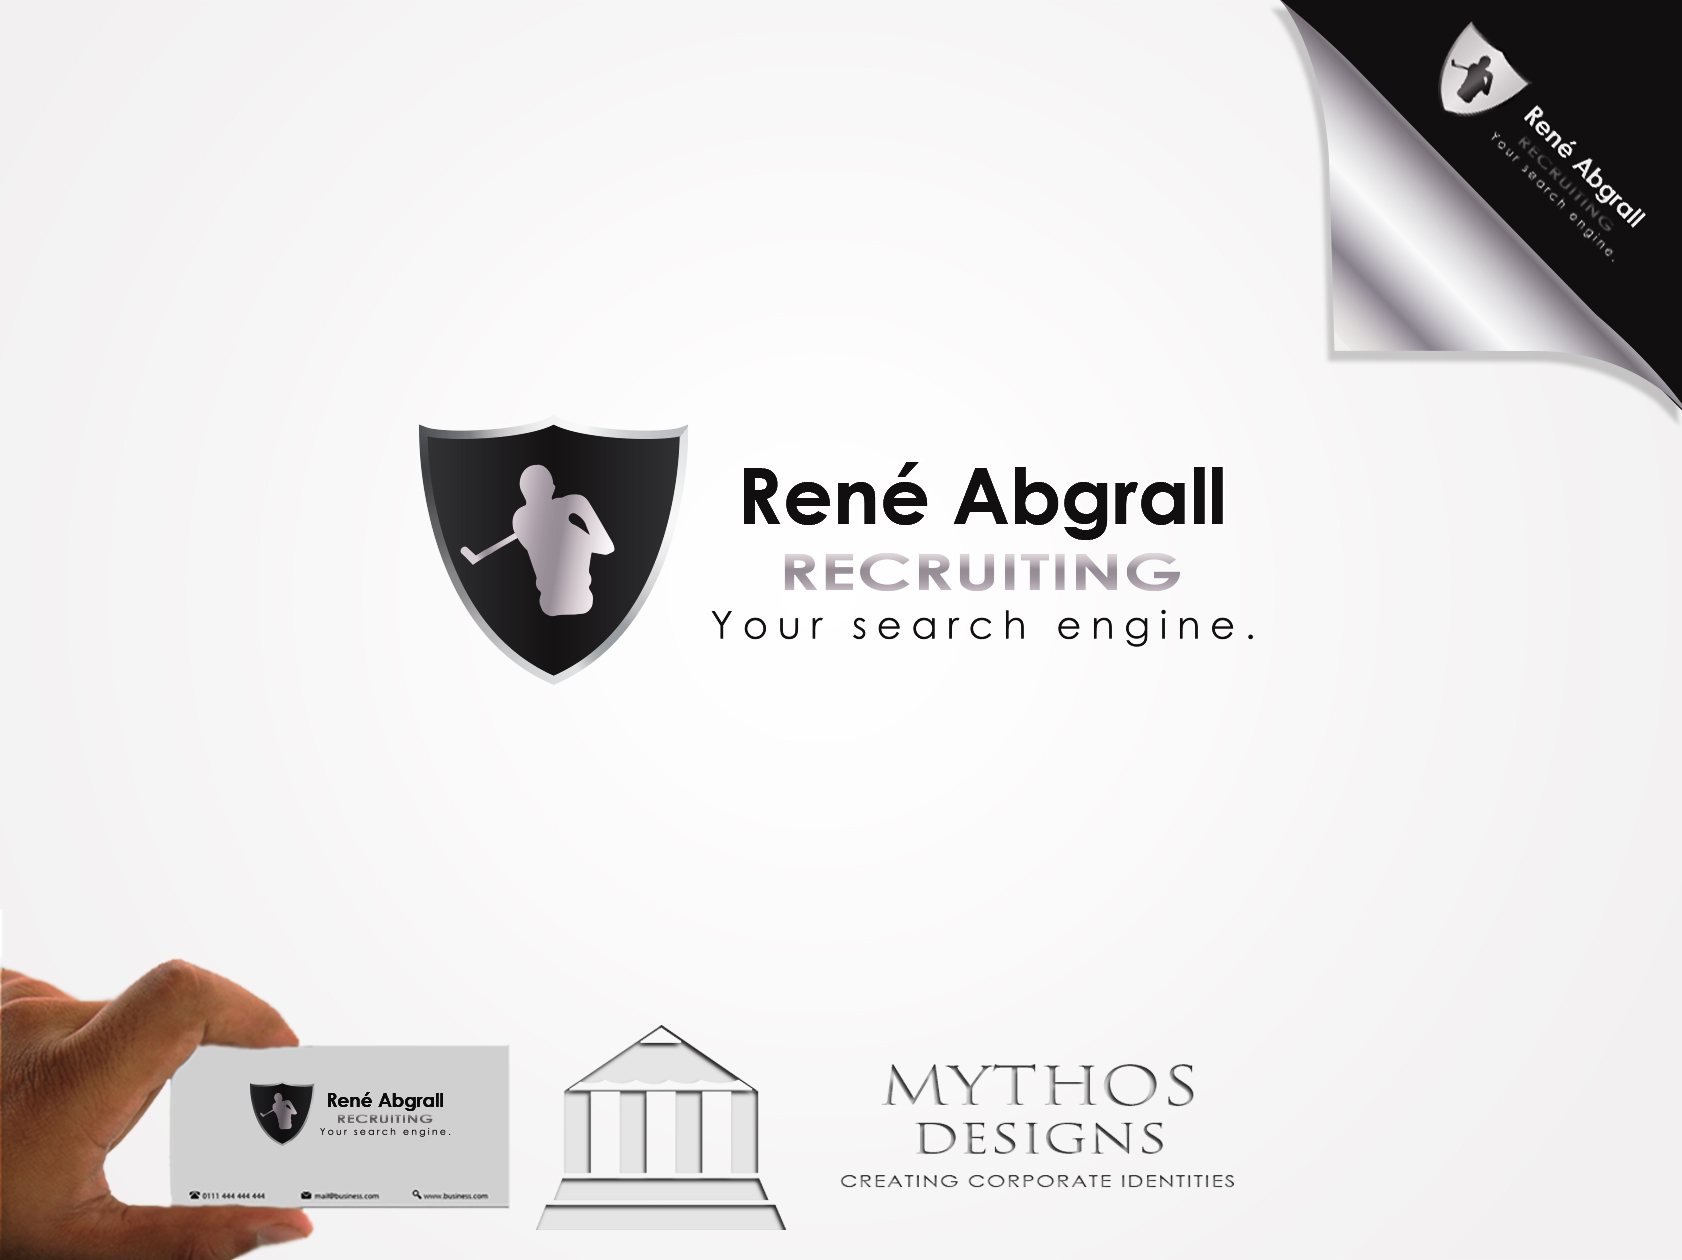 Logo Design by Mythos Designs - Entry No. 36 in the Logo Design Contest Artistic Logo Design for René Abgrall Recruiting.